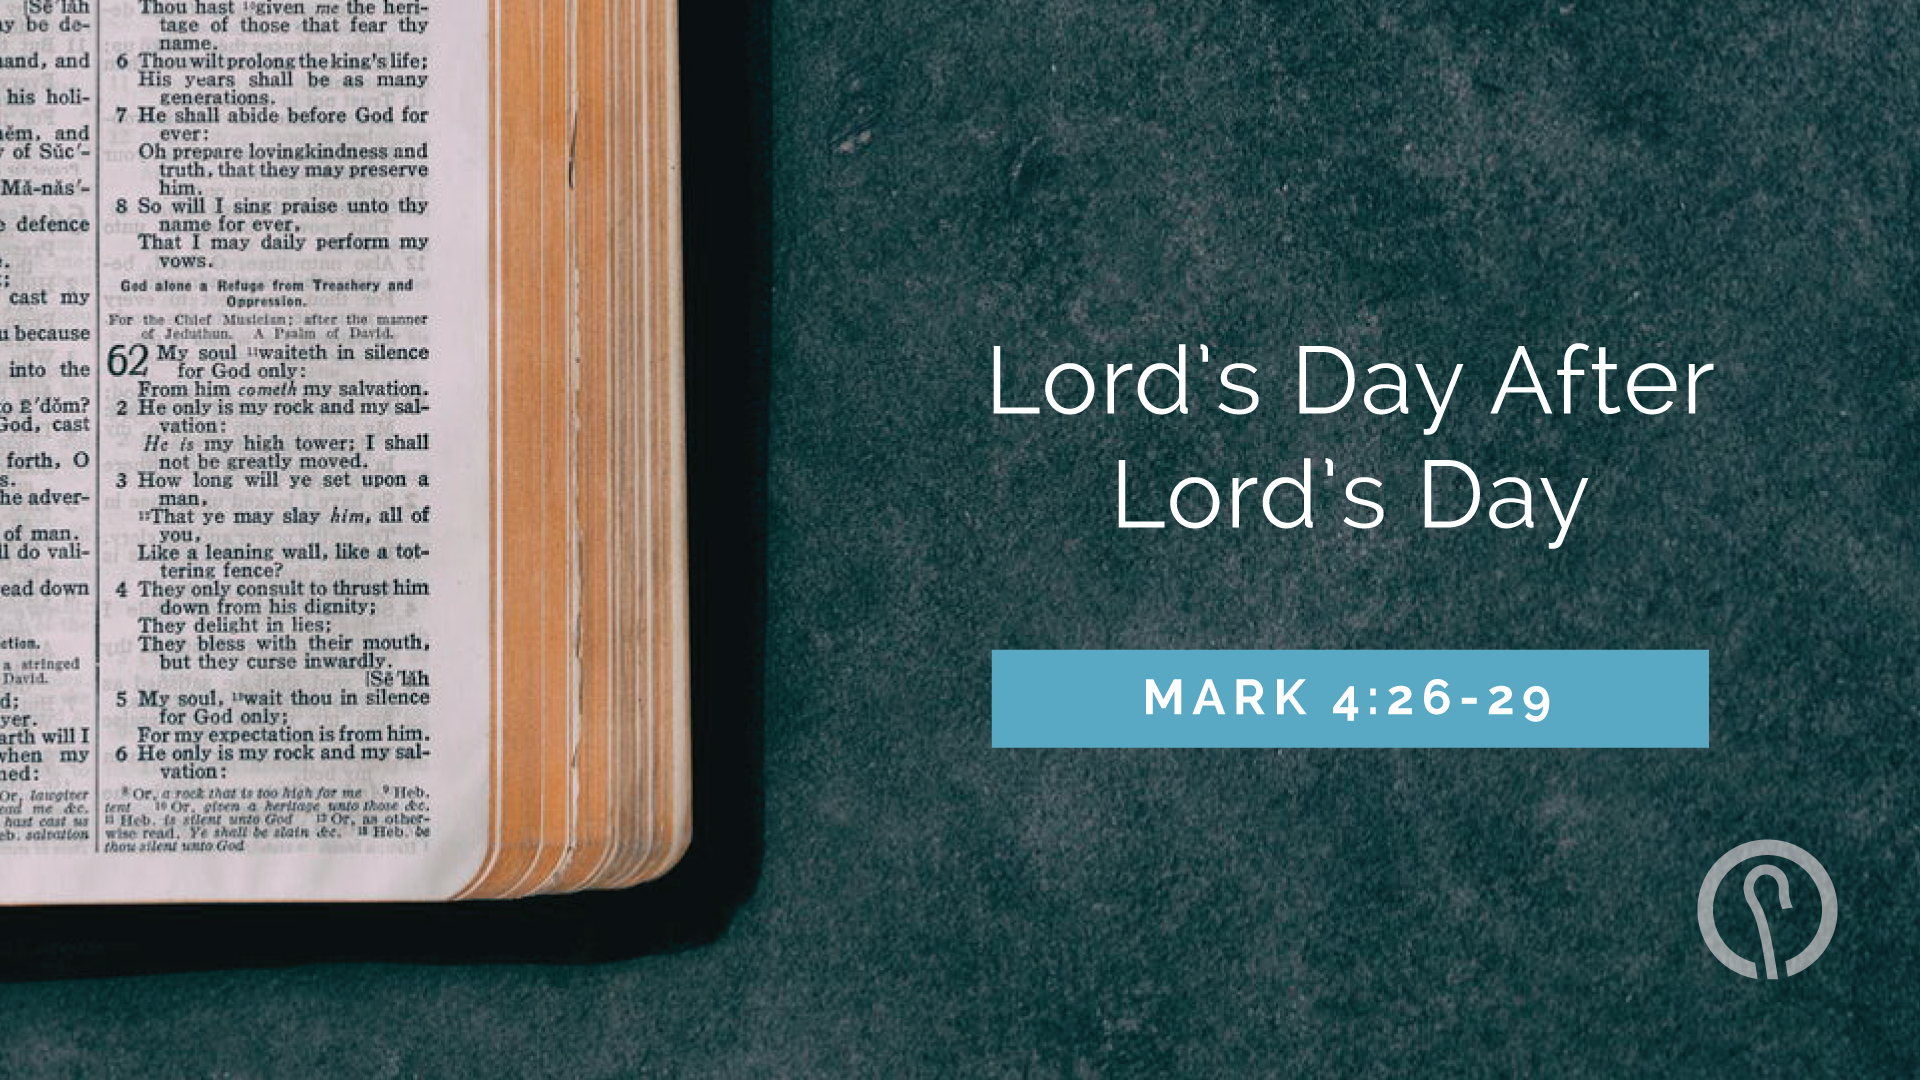 Lord's Day After Lord's Day - Mark 4:26-29.png